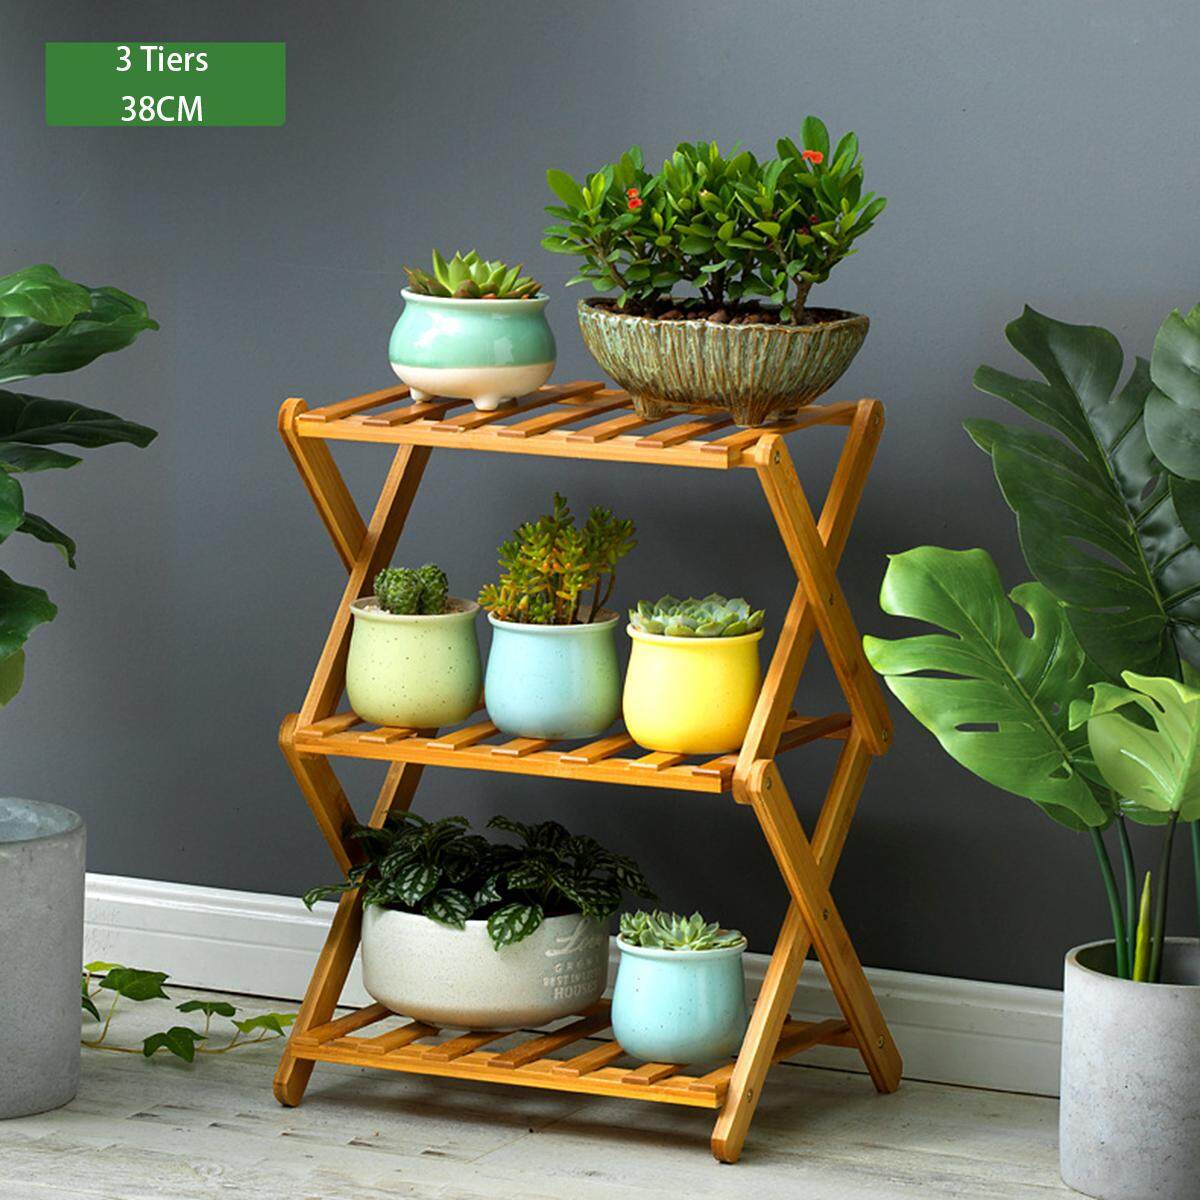 Mu Ma Ren 3 Tiers 38CM Length Floor flower shelf solid bamboo wood indoor multi-layer folding flower stand Renting/Decoration